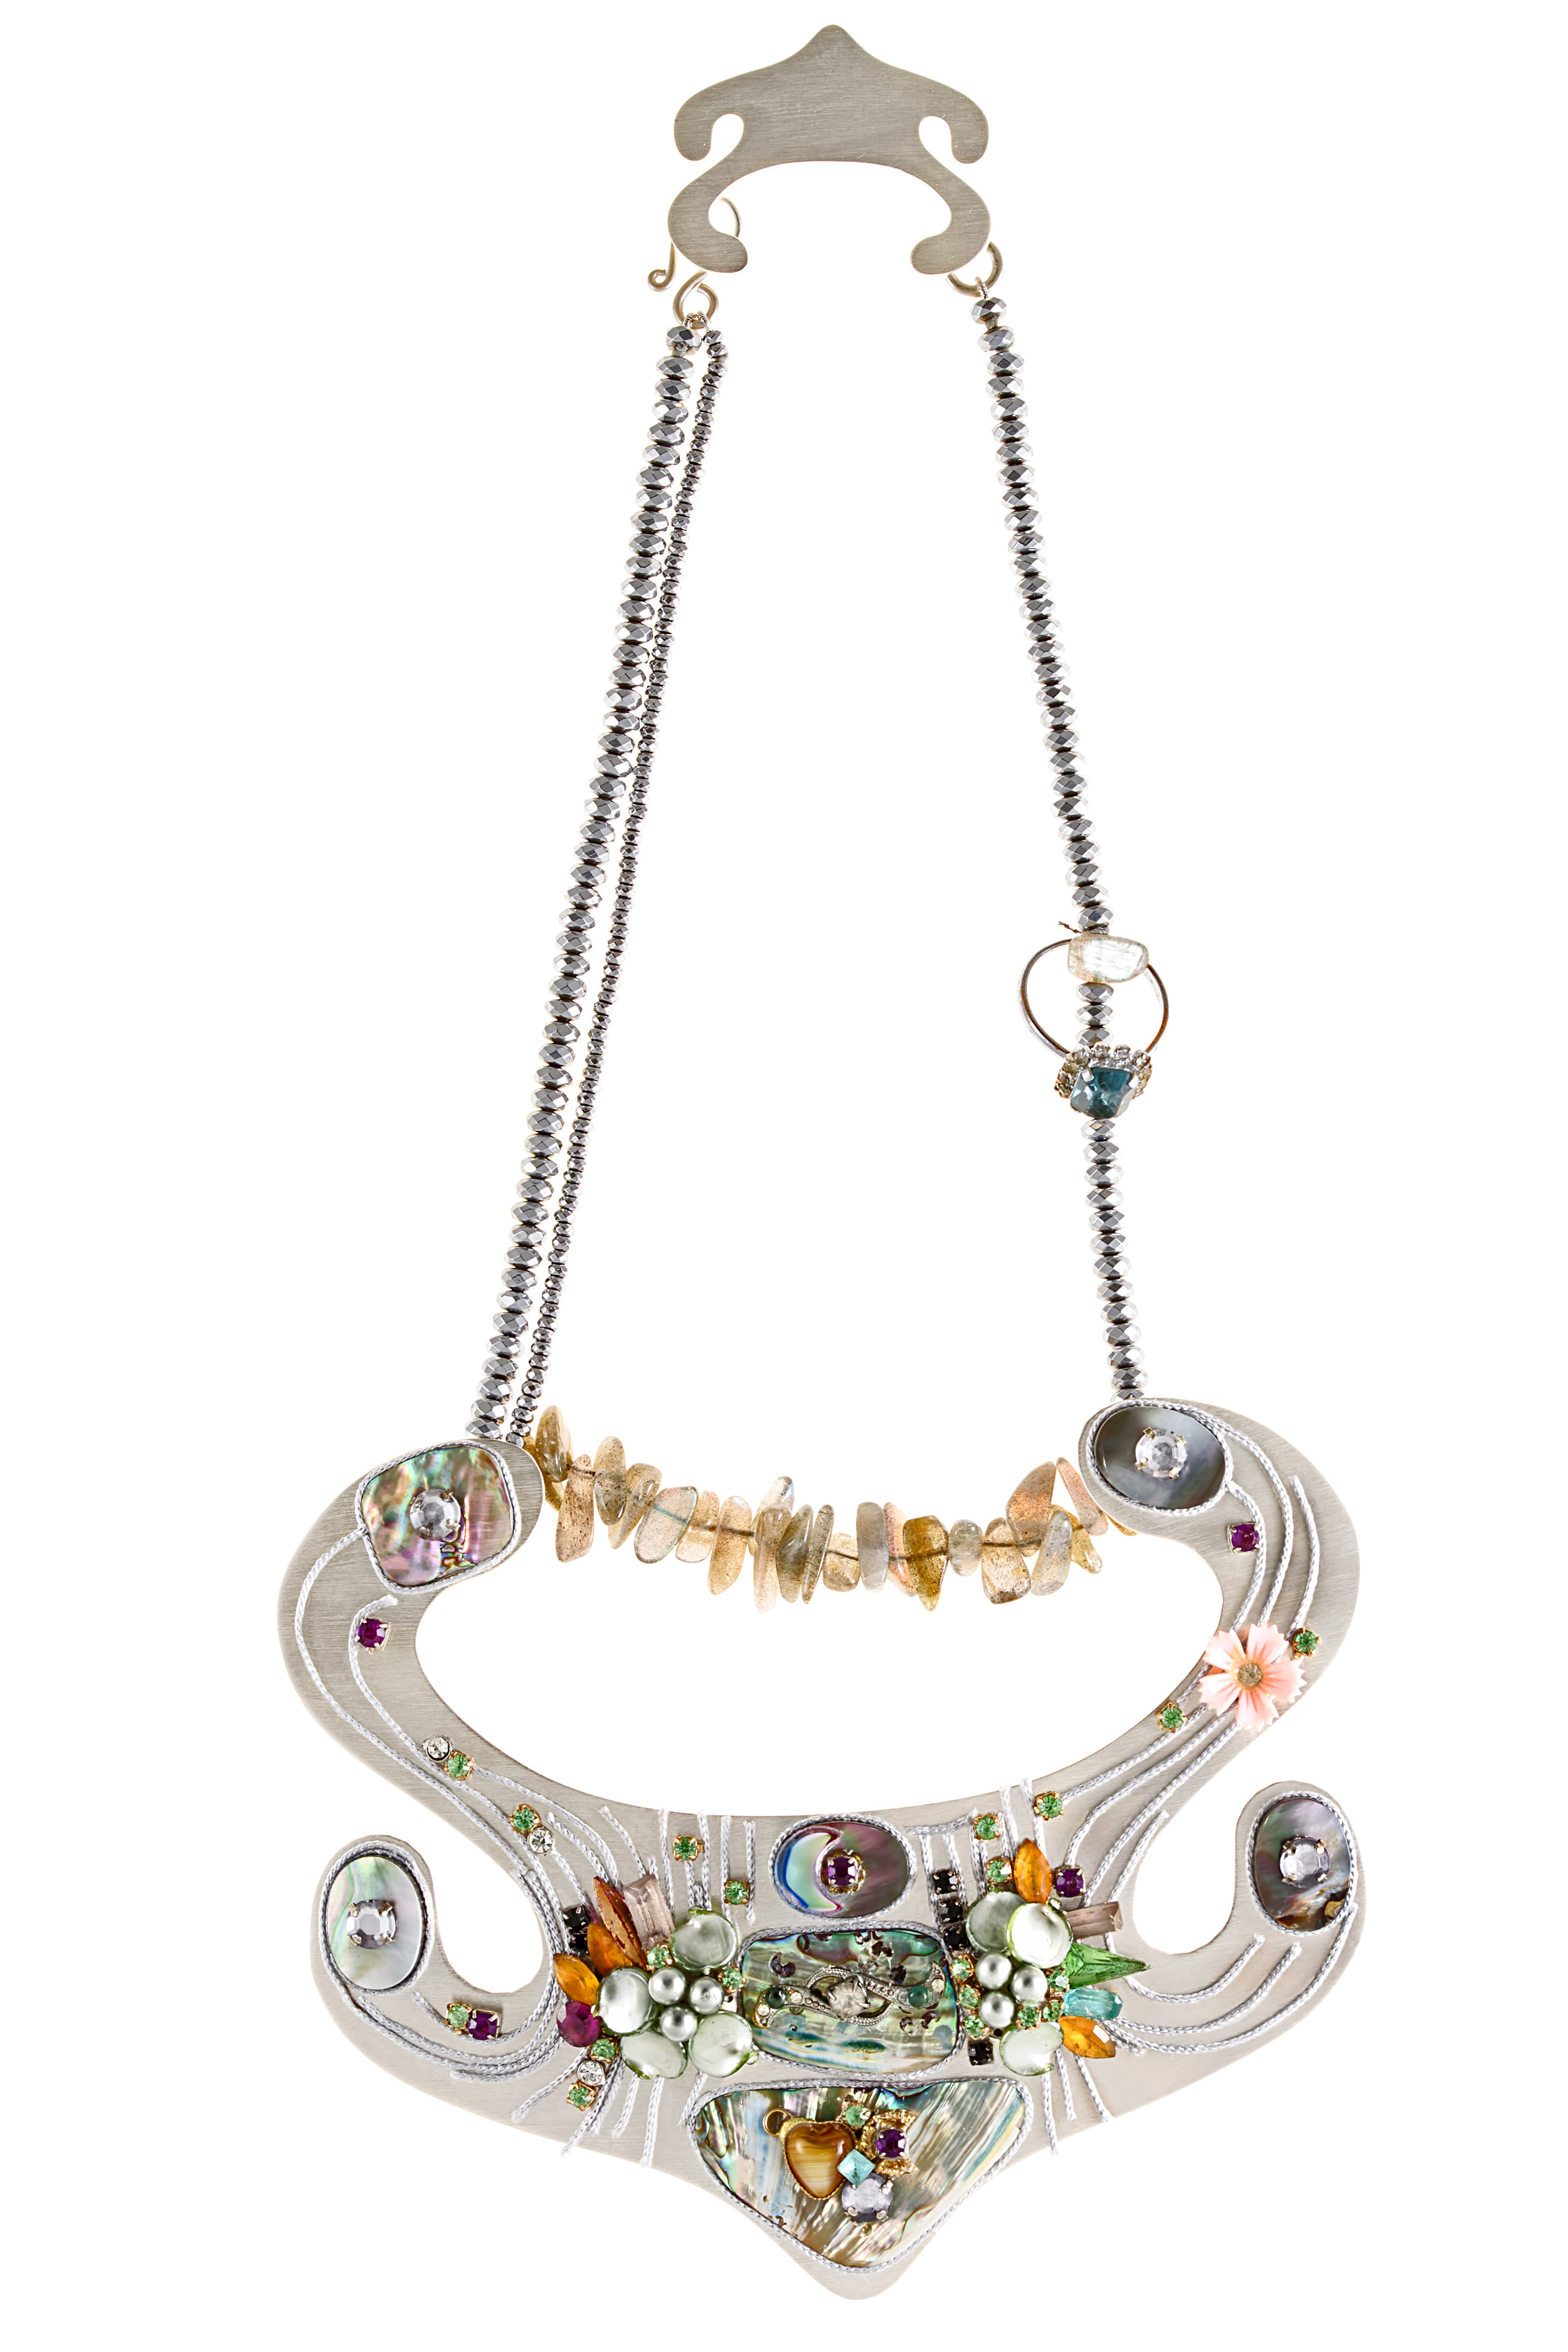 HYBRID, 'Deposed Princess' Necklace Silver Plated Bronze, Hematite, Labradorite, Mother Of Pearl, Peridot, Found Objects, Recycled Plastic, Silk